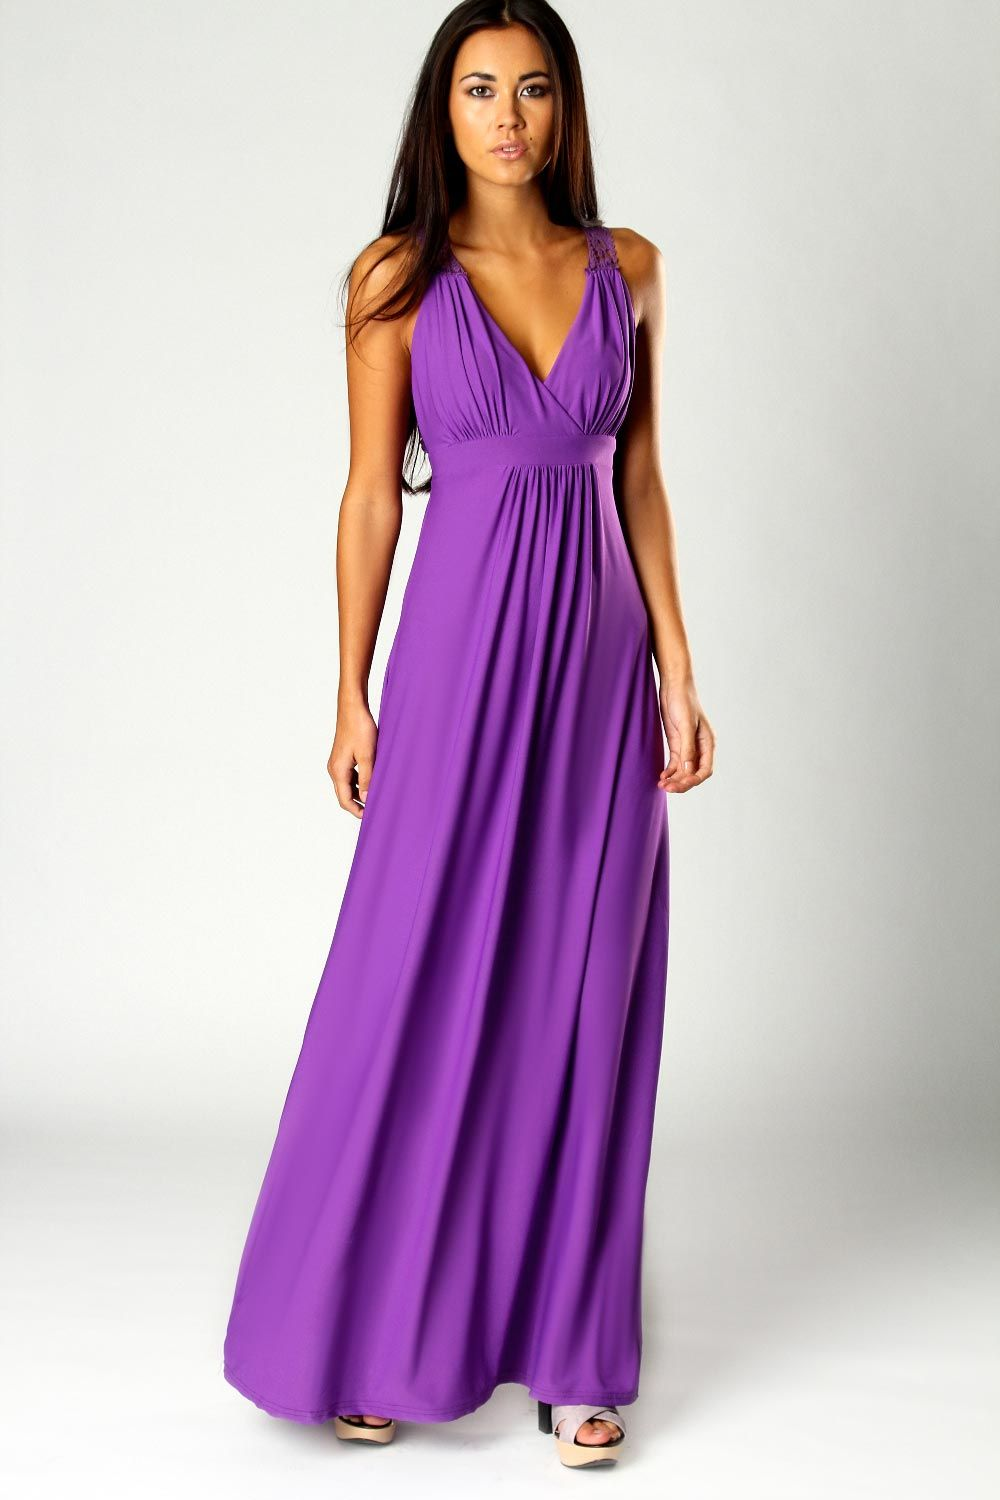 Long summer maxi dress sale